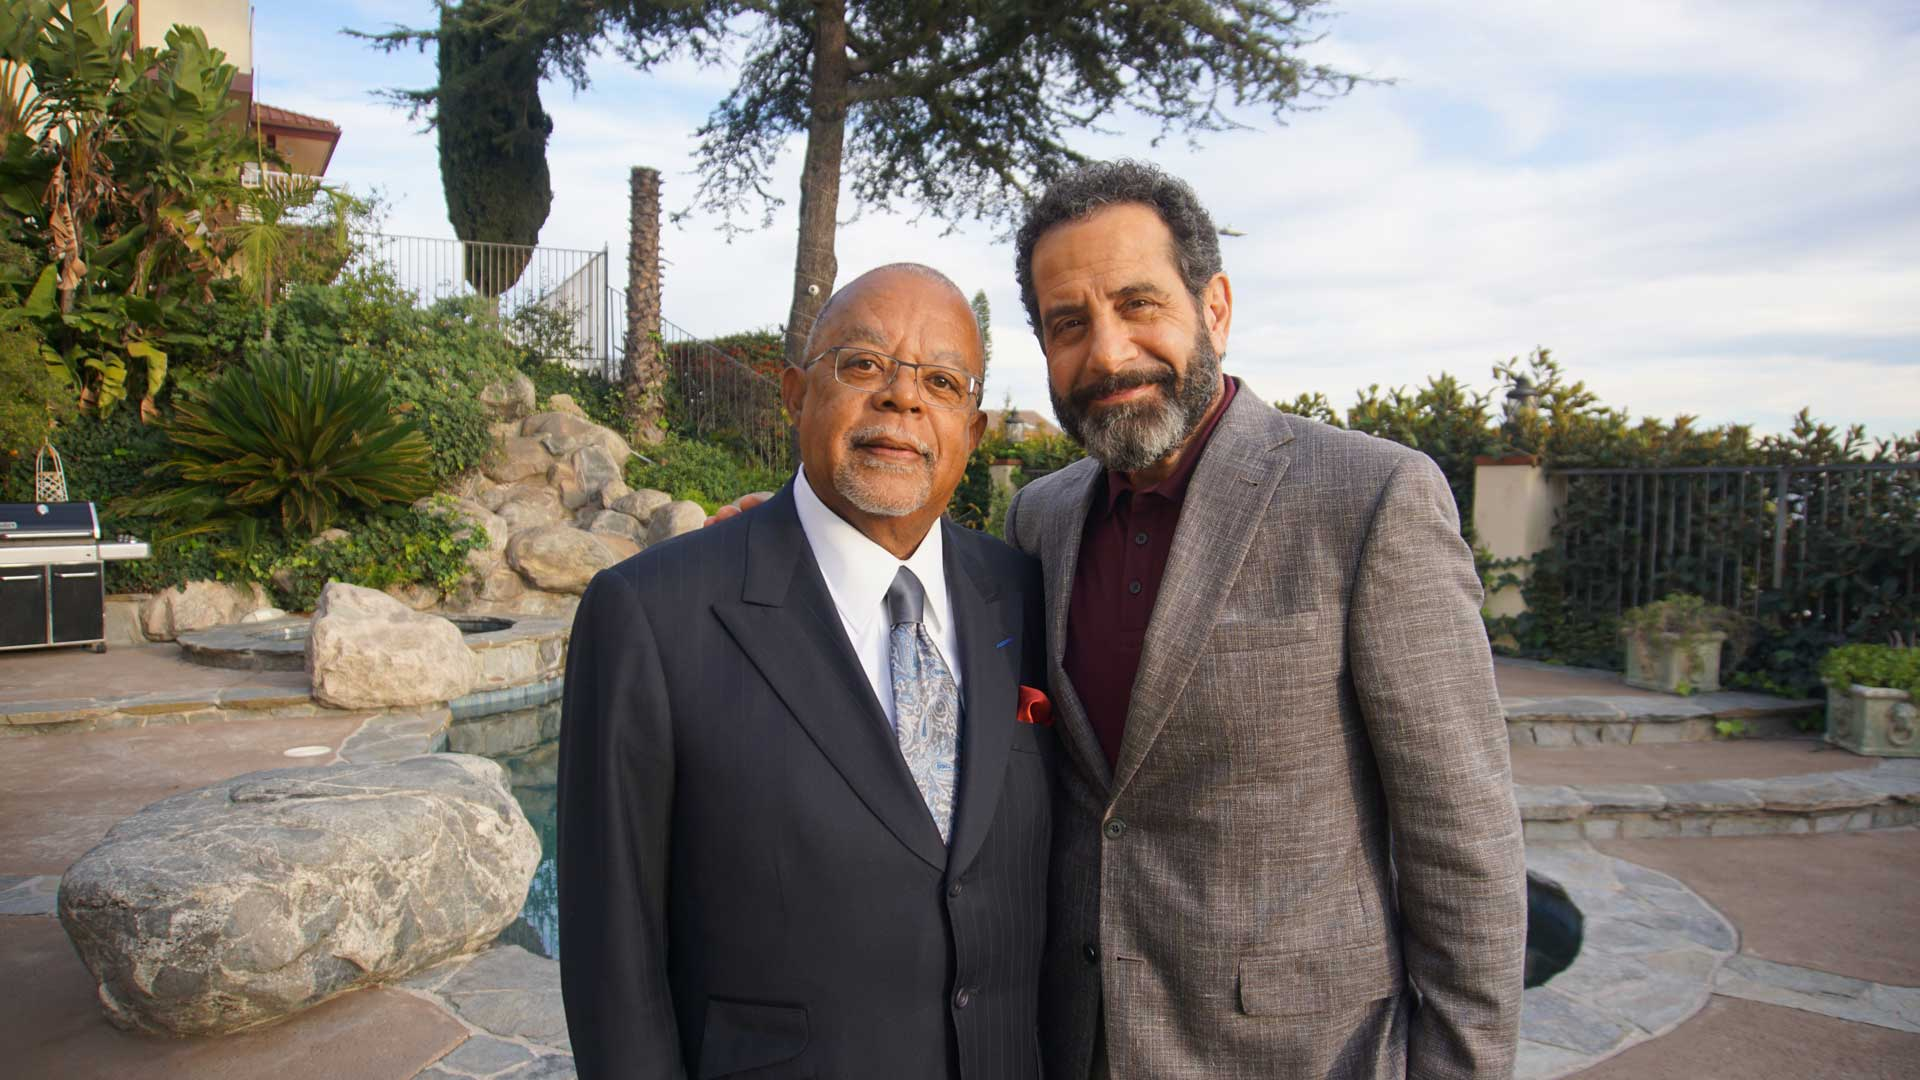 Tony Shalhoub with Henry Louis Gates Jr